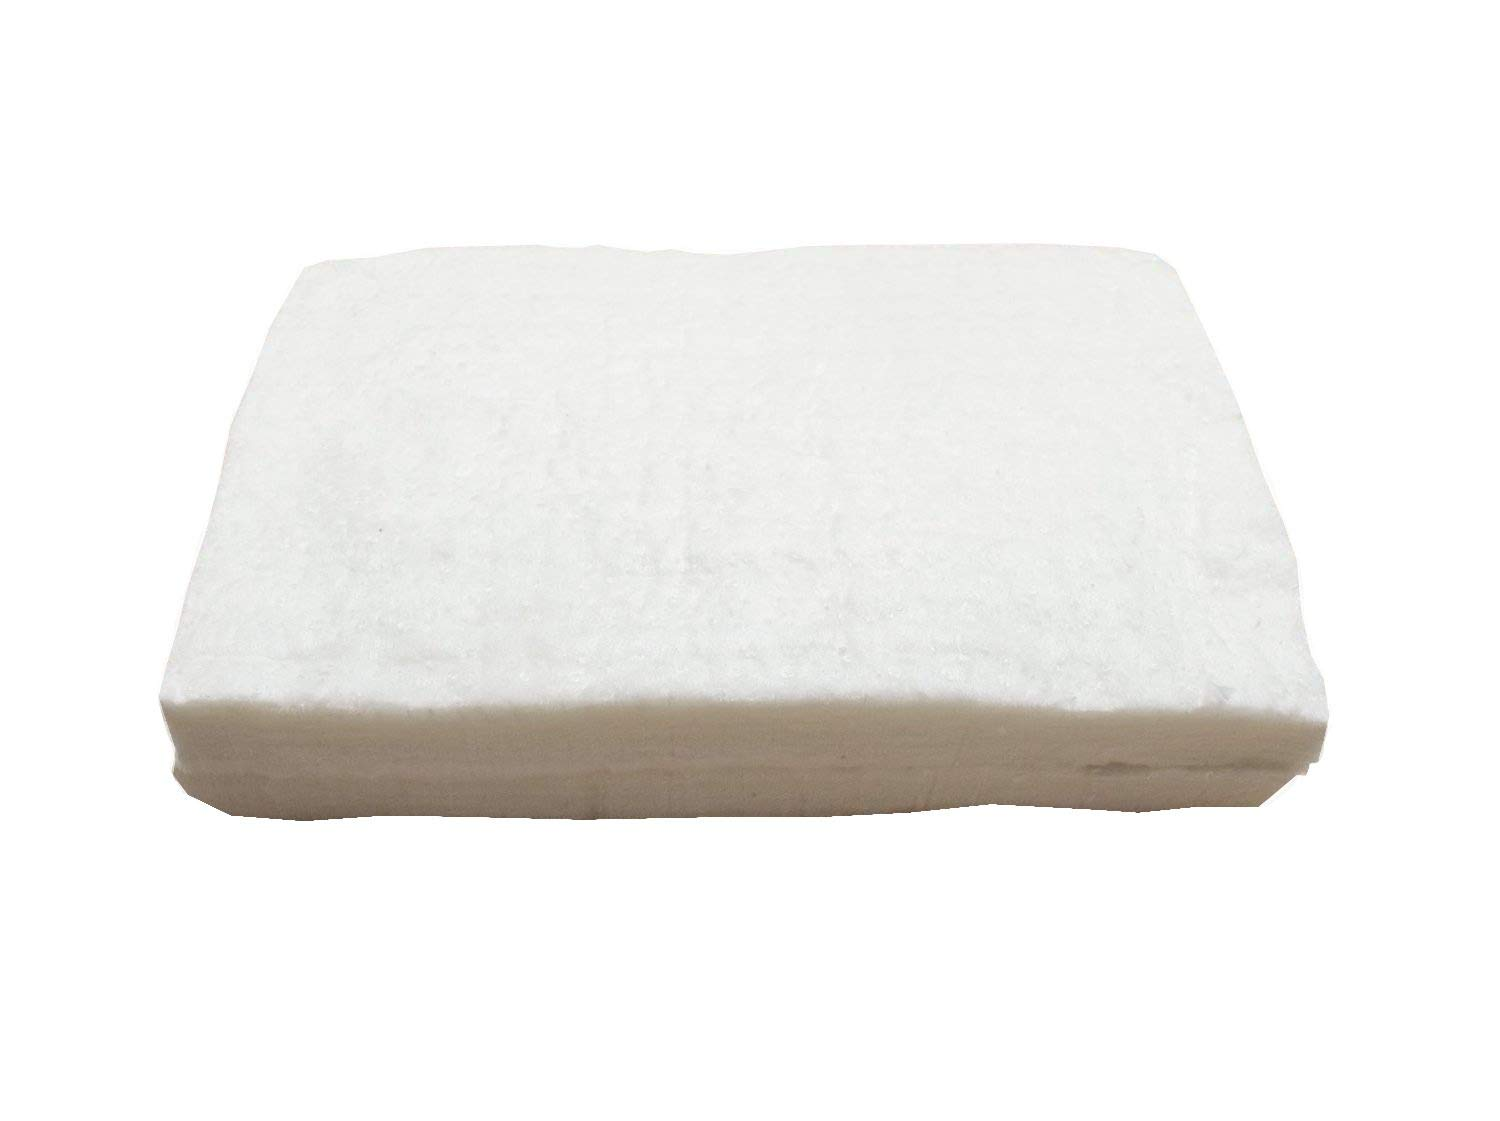 UniTherm Ceramic Fiber Insulation (6# Density, 2300°F), TWO (2) (12L X 8H X 1D Inch) Blankets for Lampworking (Flameworking) and Glass Beadmaking by UniTherm International